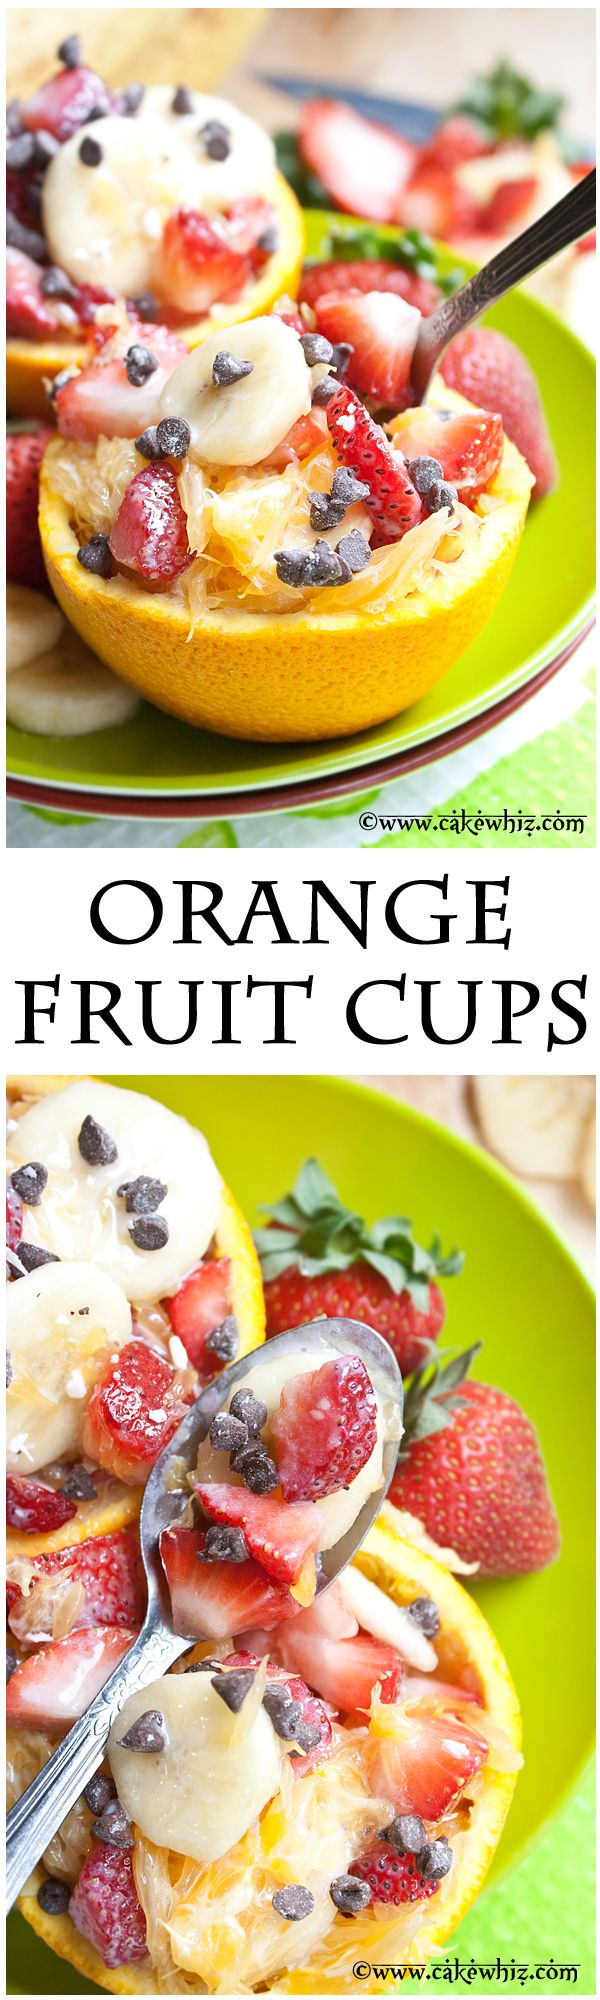 ORANGE FRUIT CUPS... refreshingly fresh and healthy treat that's ready in about 5 minutes! Even kids love these colorful little cups. From cakewhiz.com